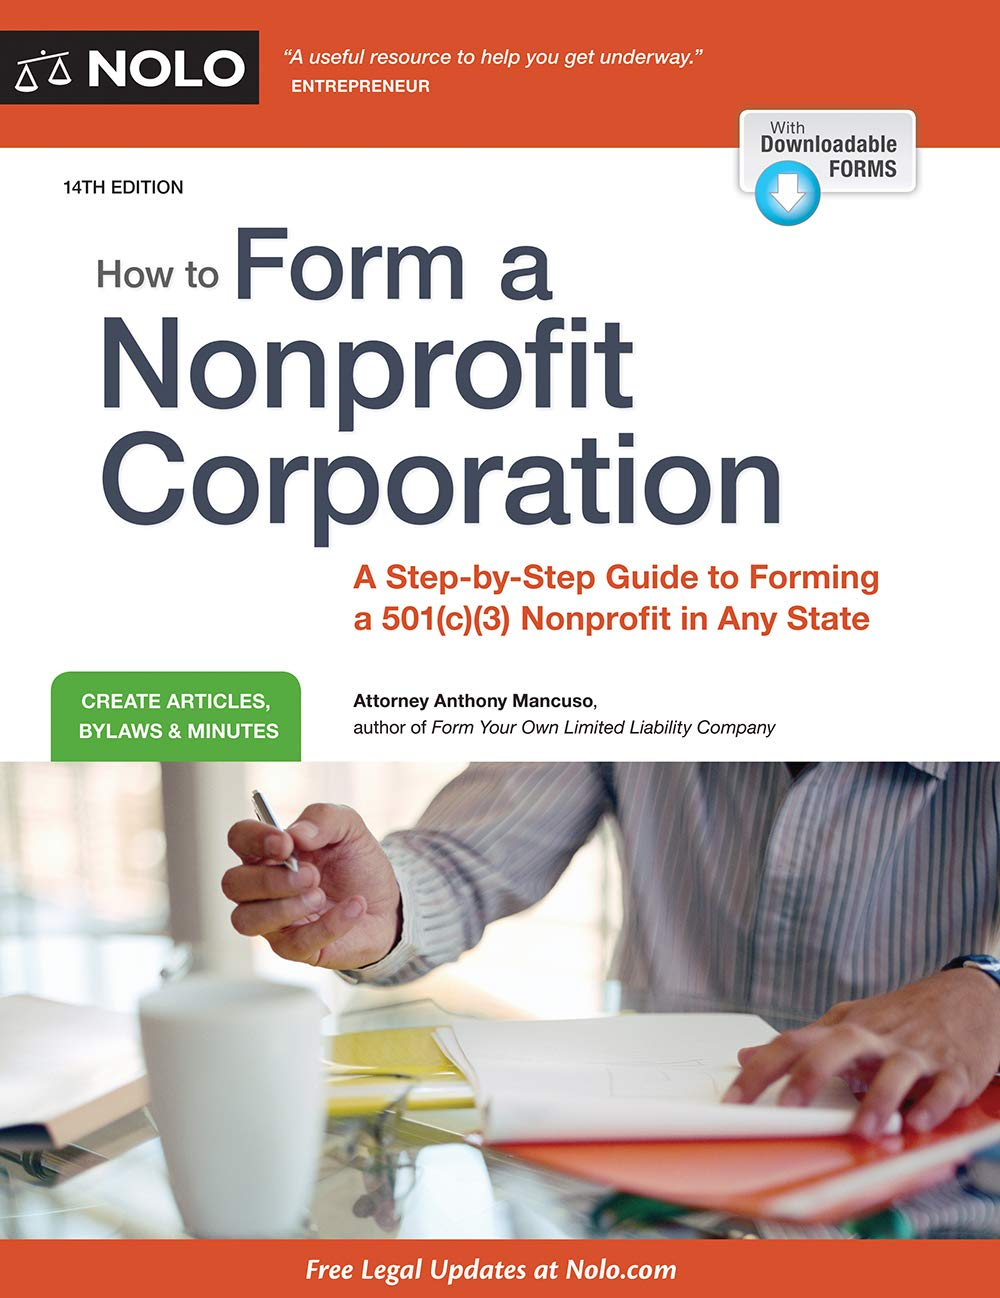 How to Form a Nonprofit Corporation (National Edition): A Step-by-Step Guide to Forming a 501(c)(3) Nonprofit in Any State by NOLO